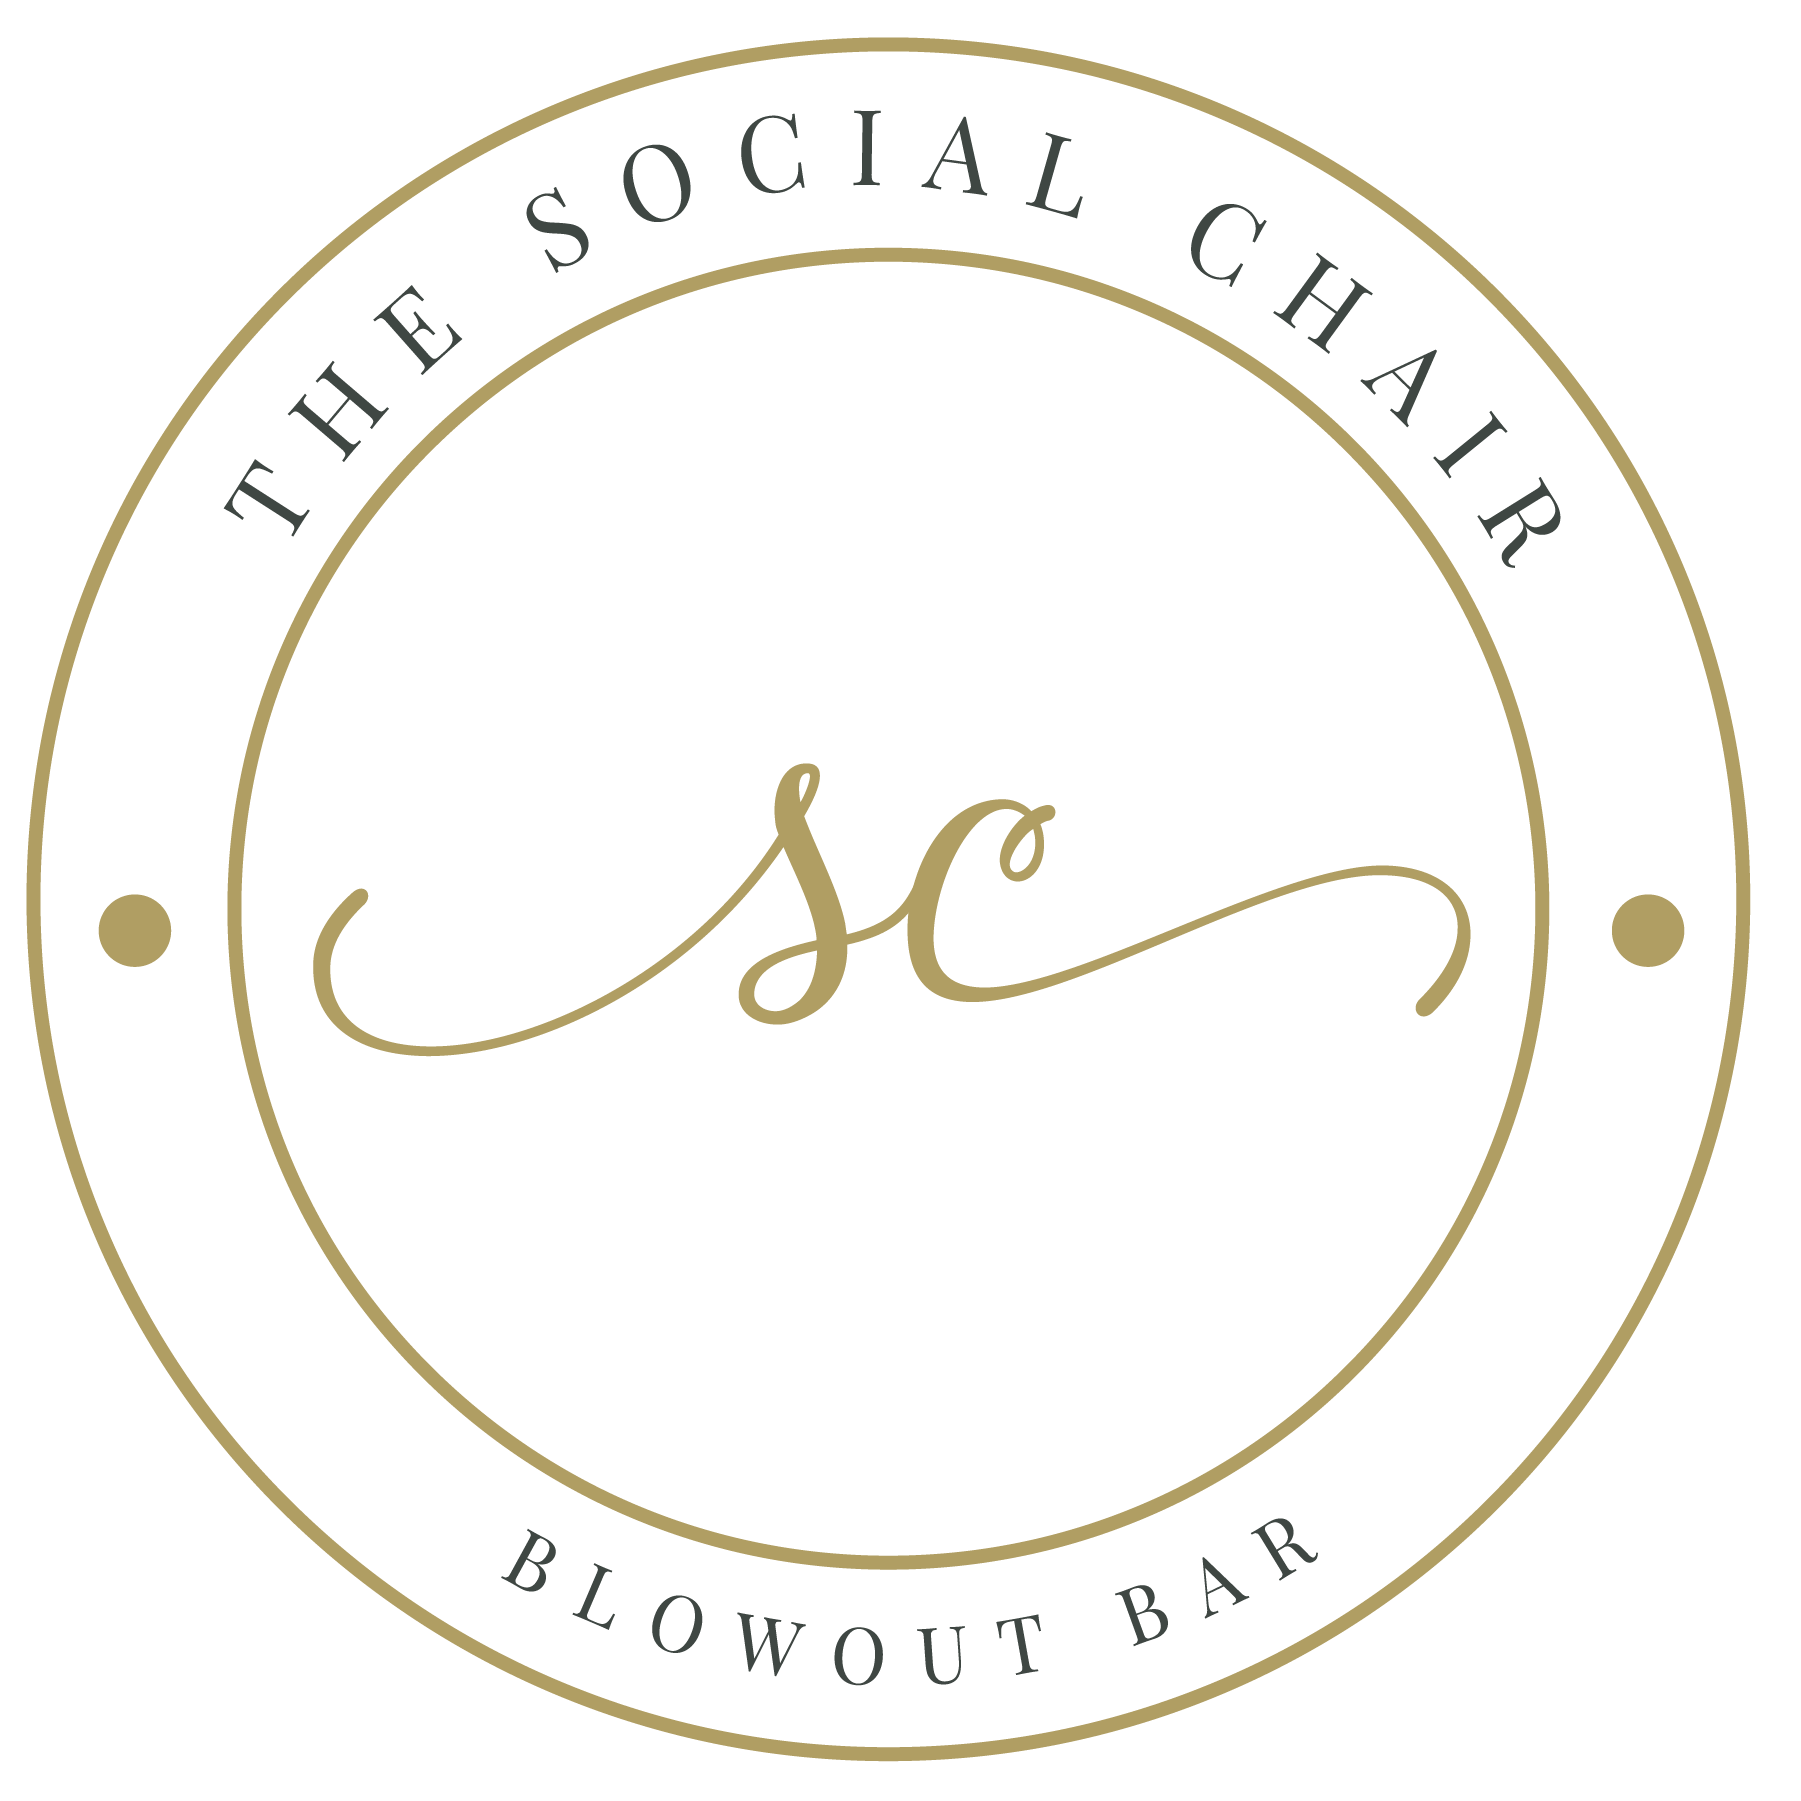 The Social Chair | Dow Smith Company | Smyrna, Tennessee